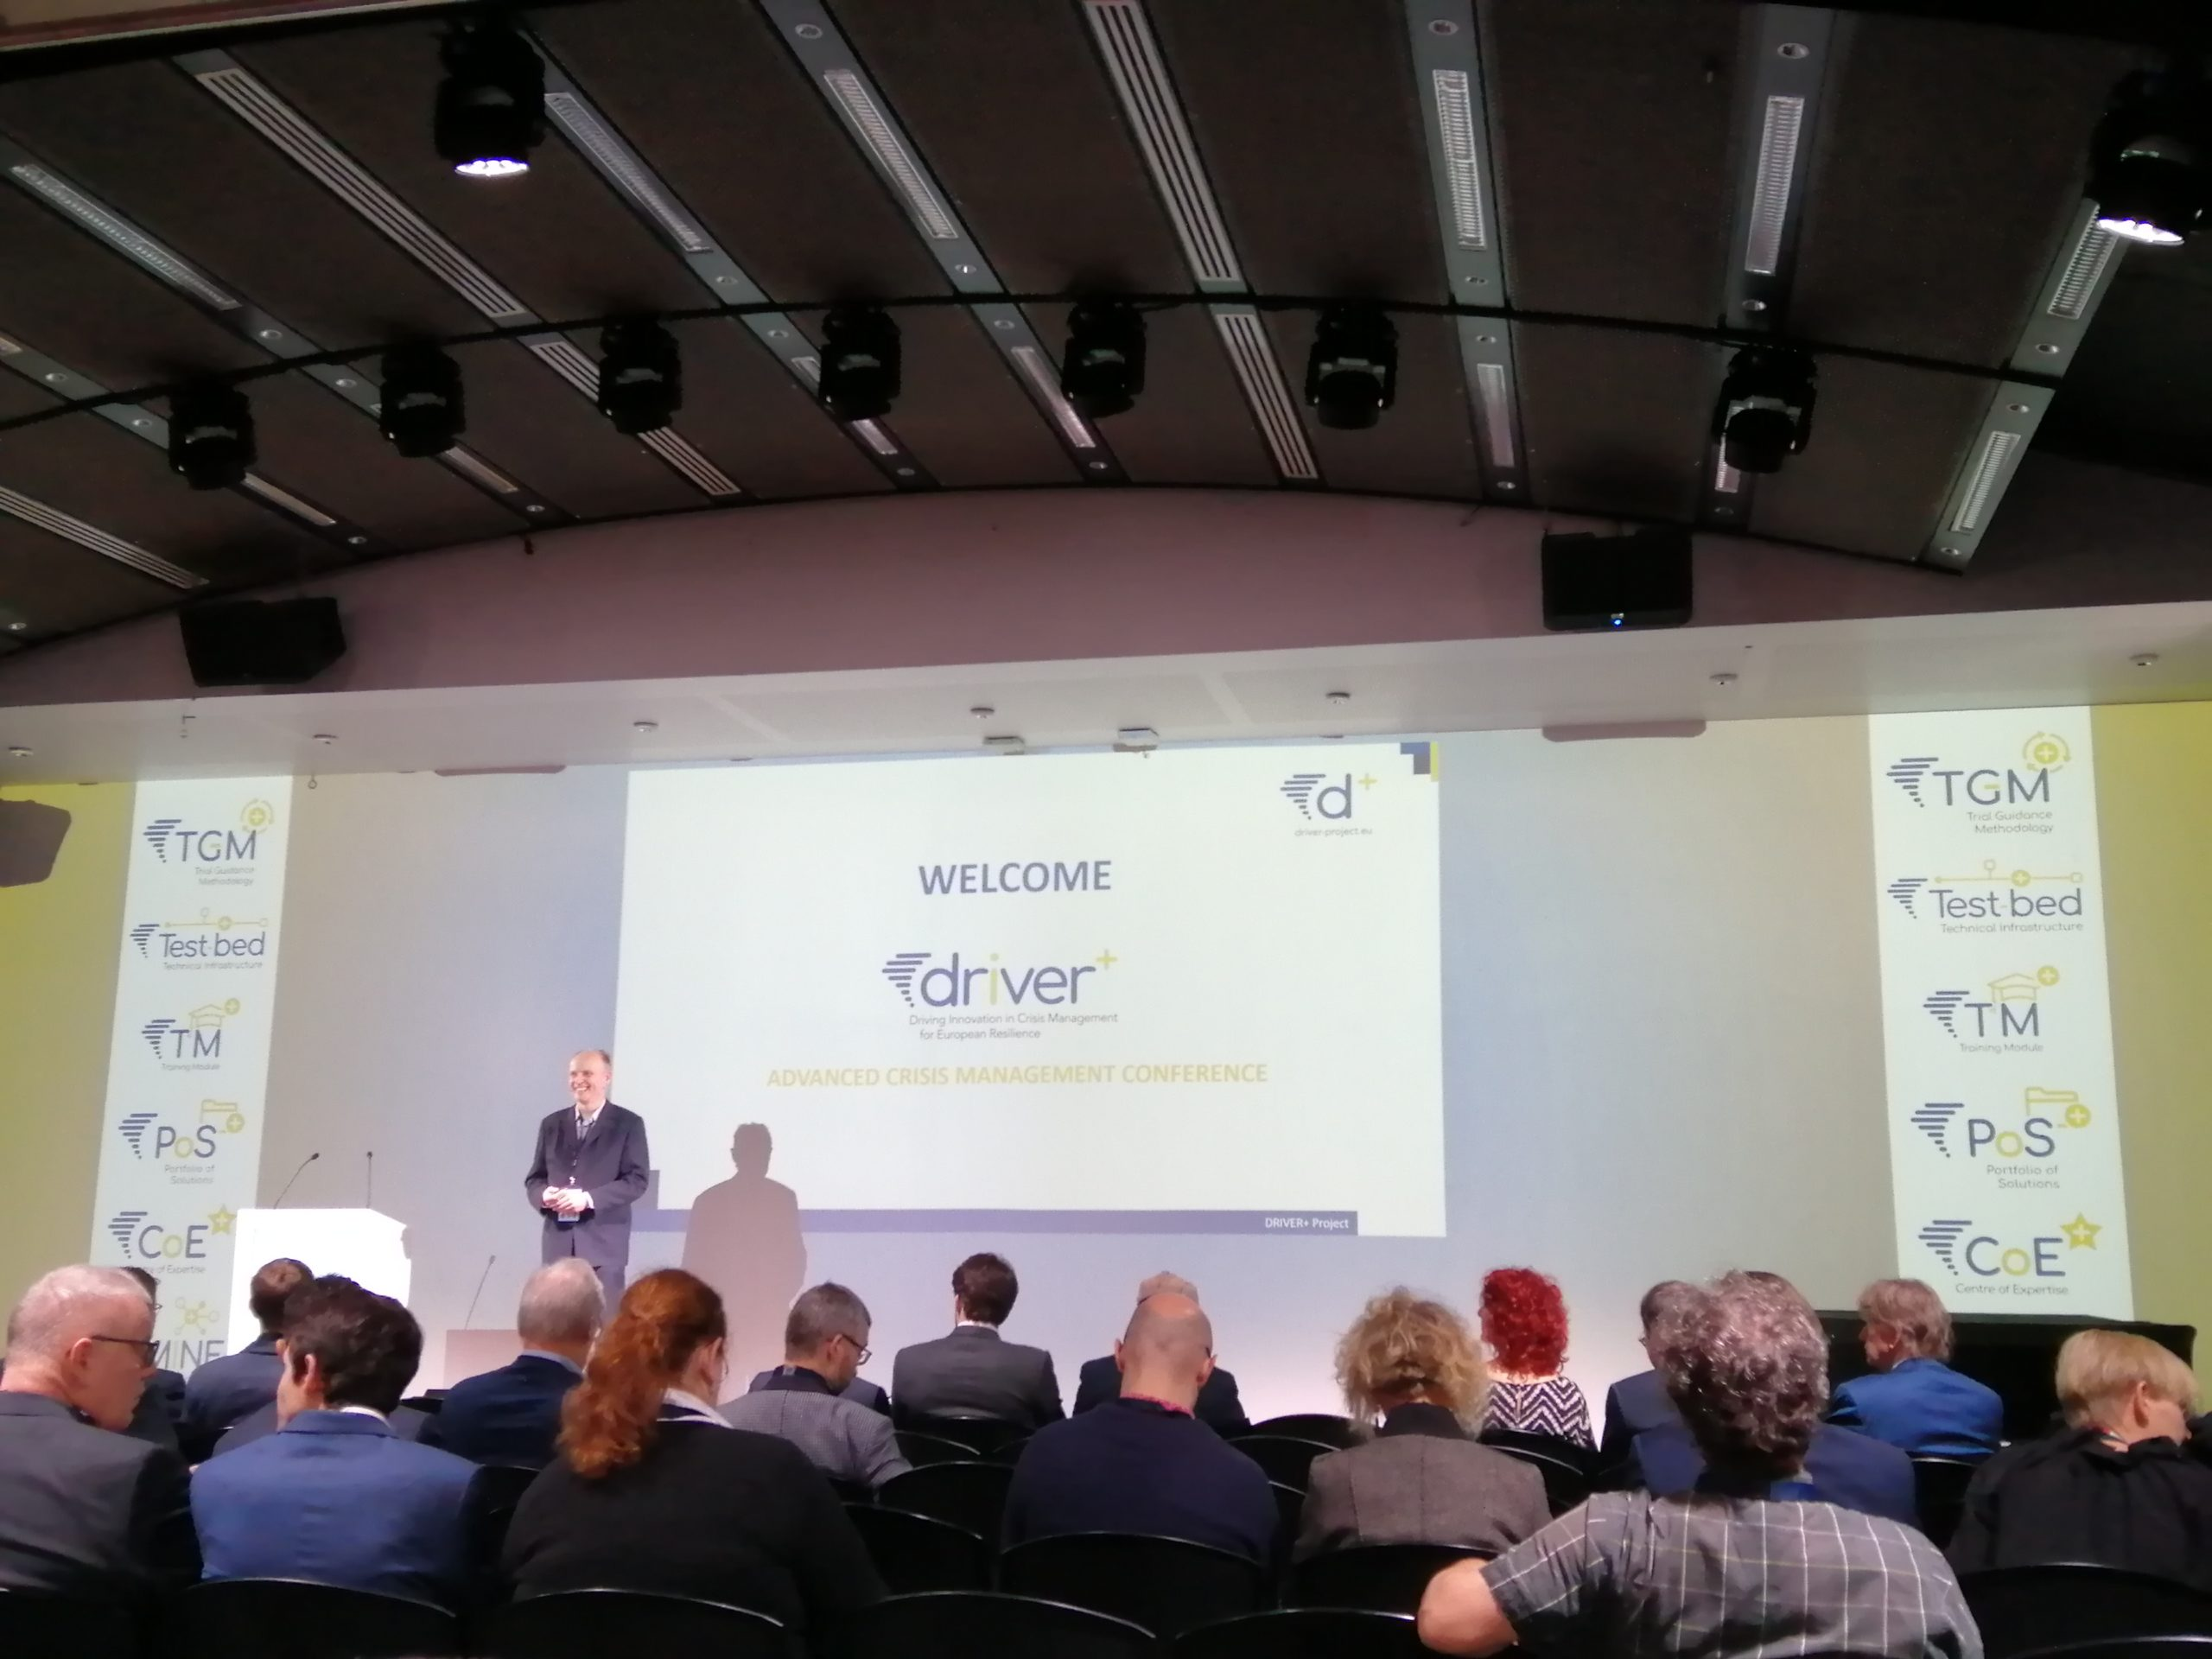 Dr. Marcel van Berlo opens the Driver+ Final Conference